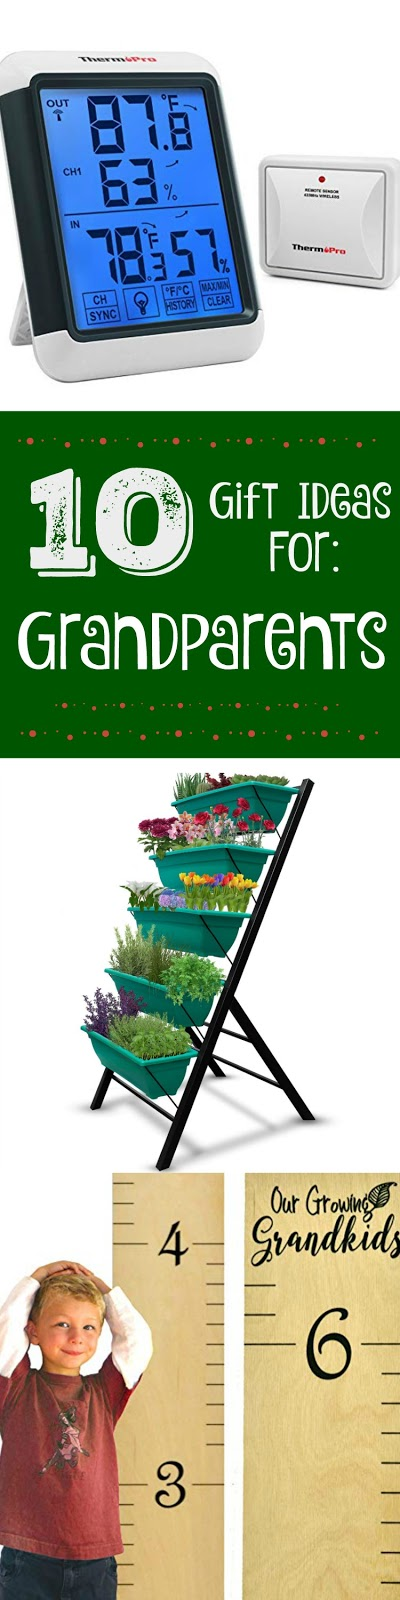 10 Holiday Gift Ideas for Grandparents...all your holiday shopping for this generation done in one post!  From garden materials and sentimental items to techy devices to help them around the home.  Great holiday gift guide for Grandparents! (sweetandsavoryfood.com)